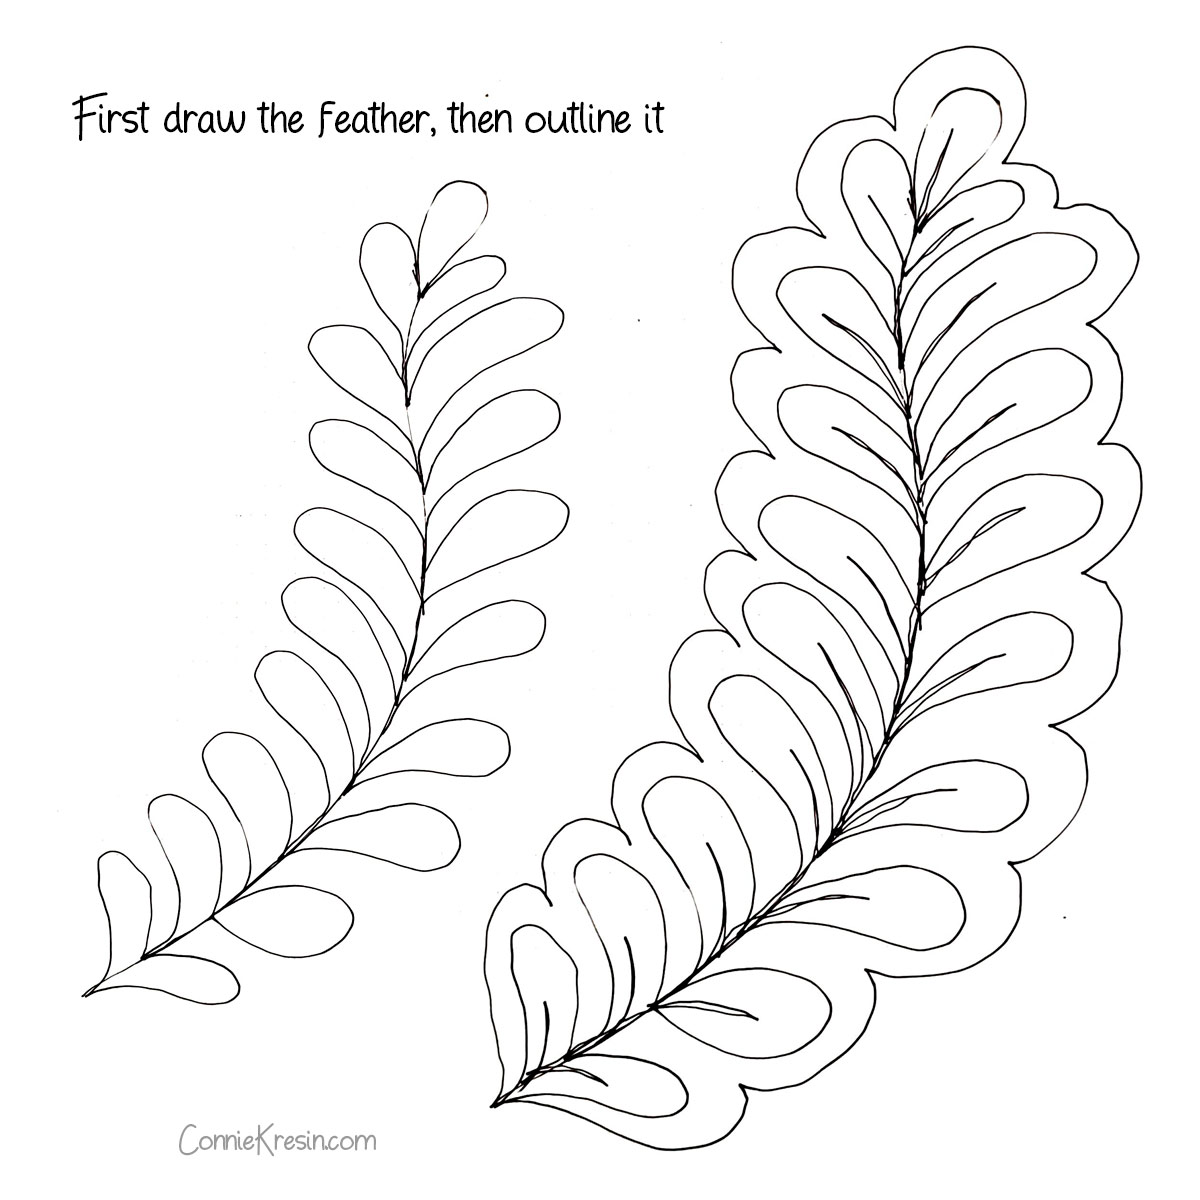 Diagram of outlined quilted feather